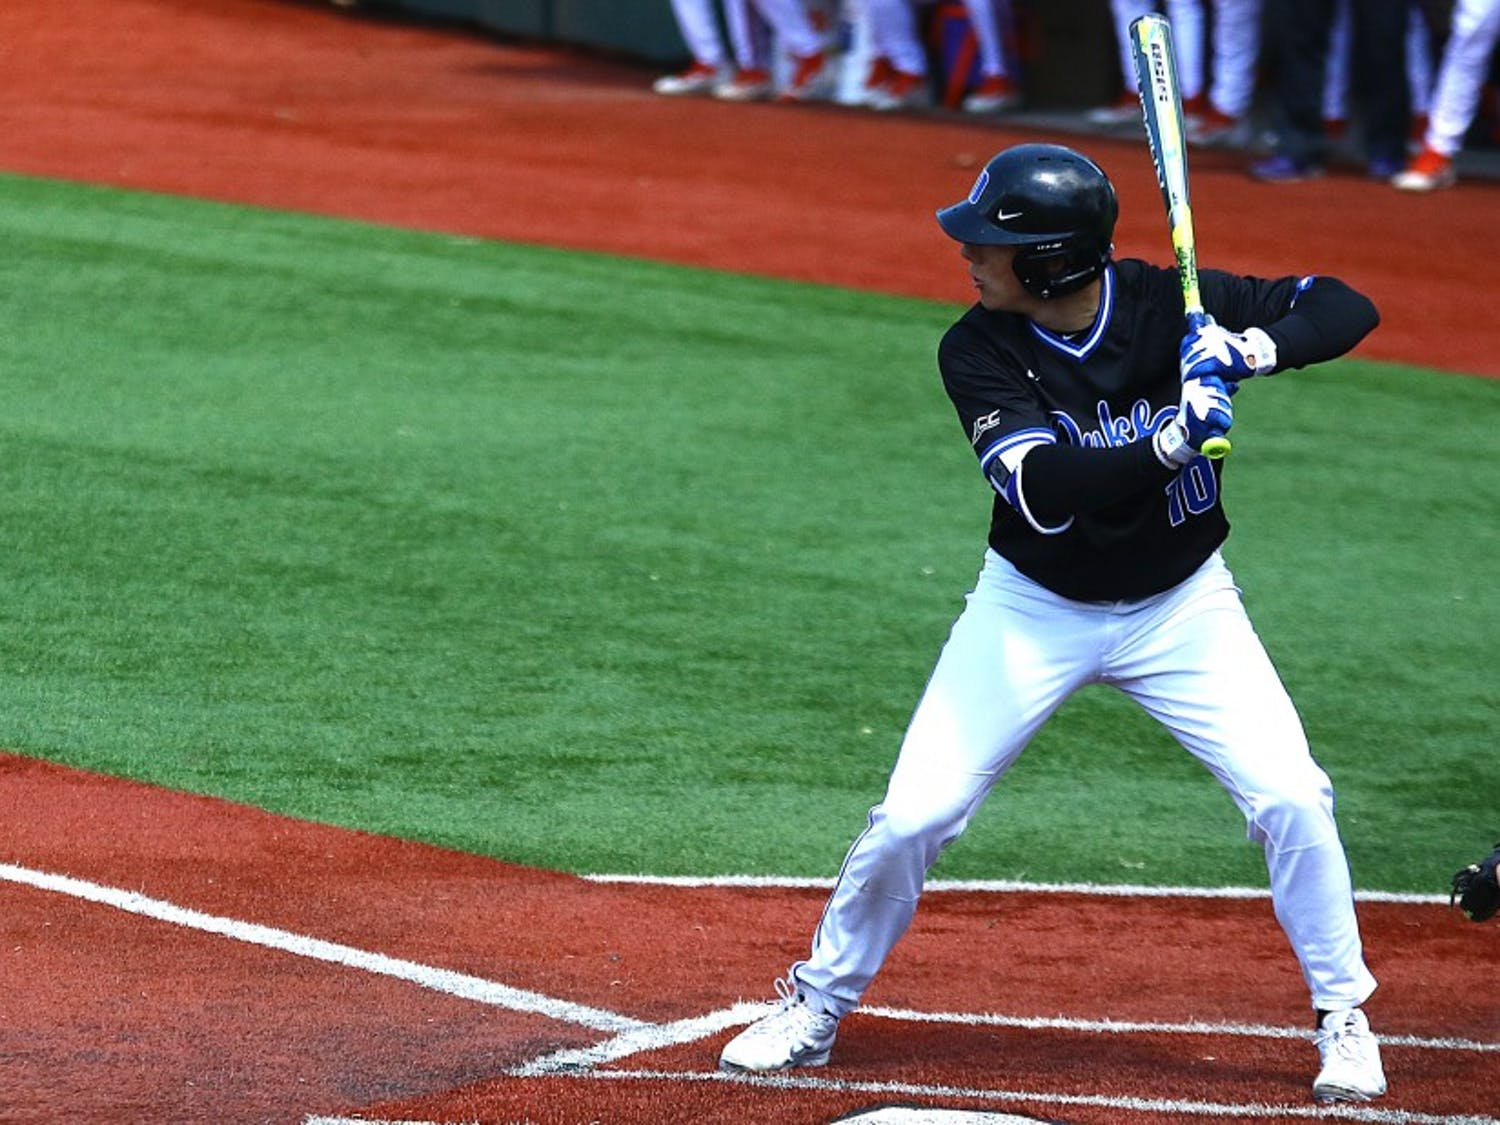 Peter Zyla went 4-for-5 Tuesday night against Davidson as Duke rolled to a 13-3 victory for its eighth win in its last 10 games.